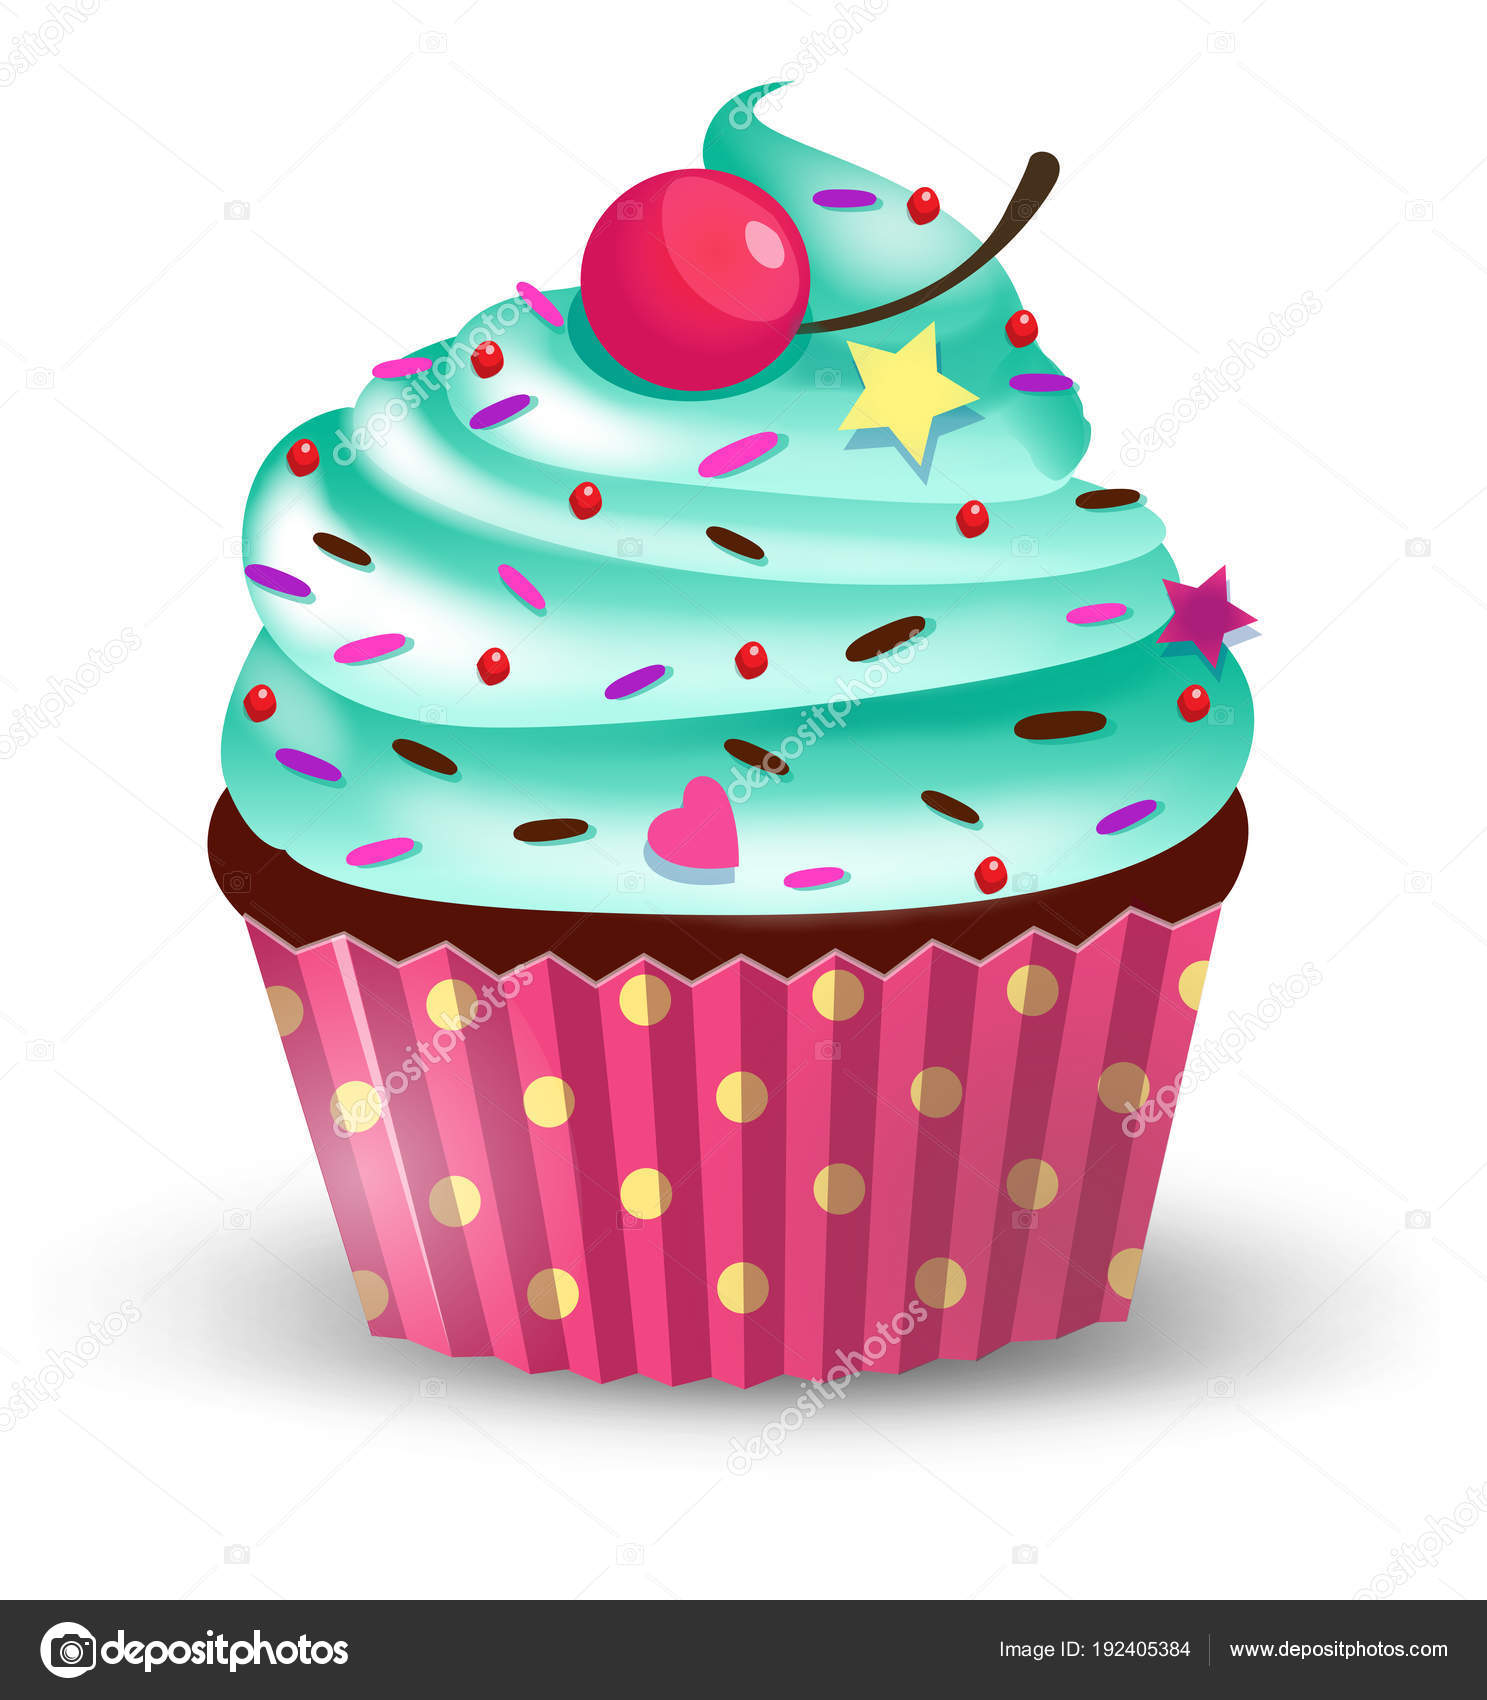 Clipart: cute cartoon cupcake.